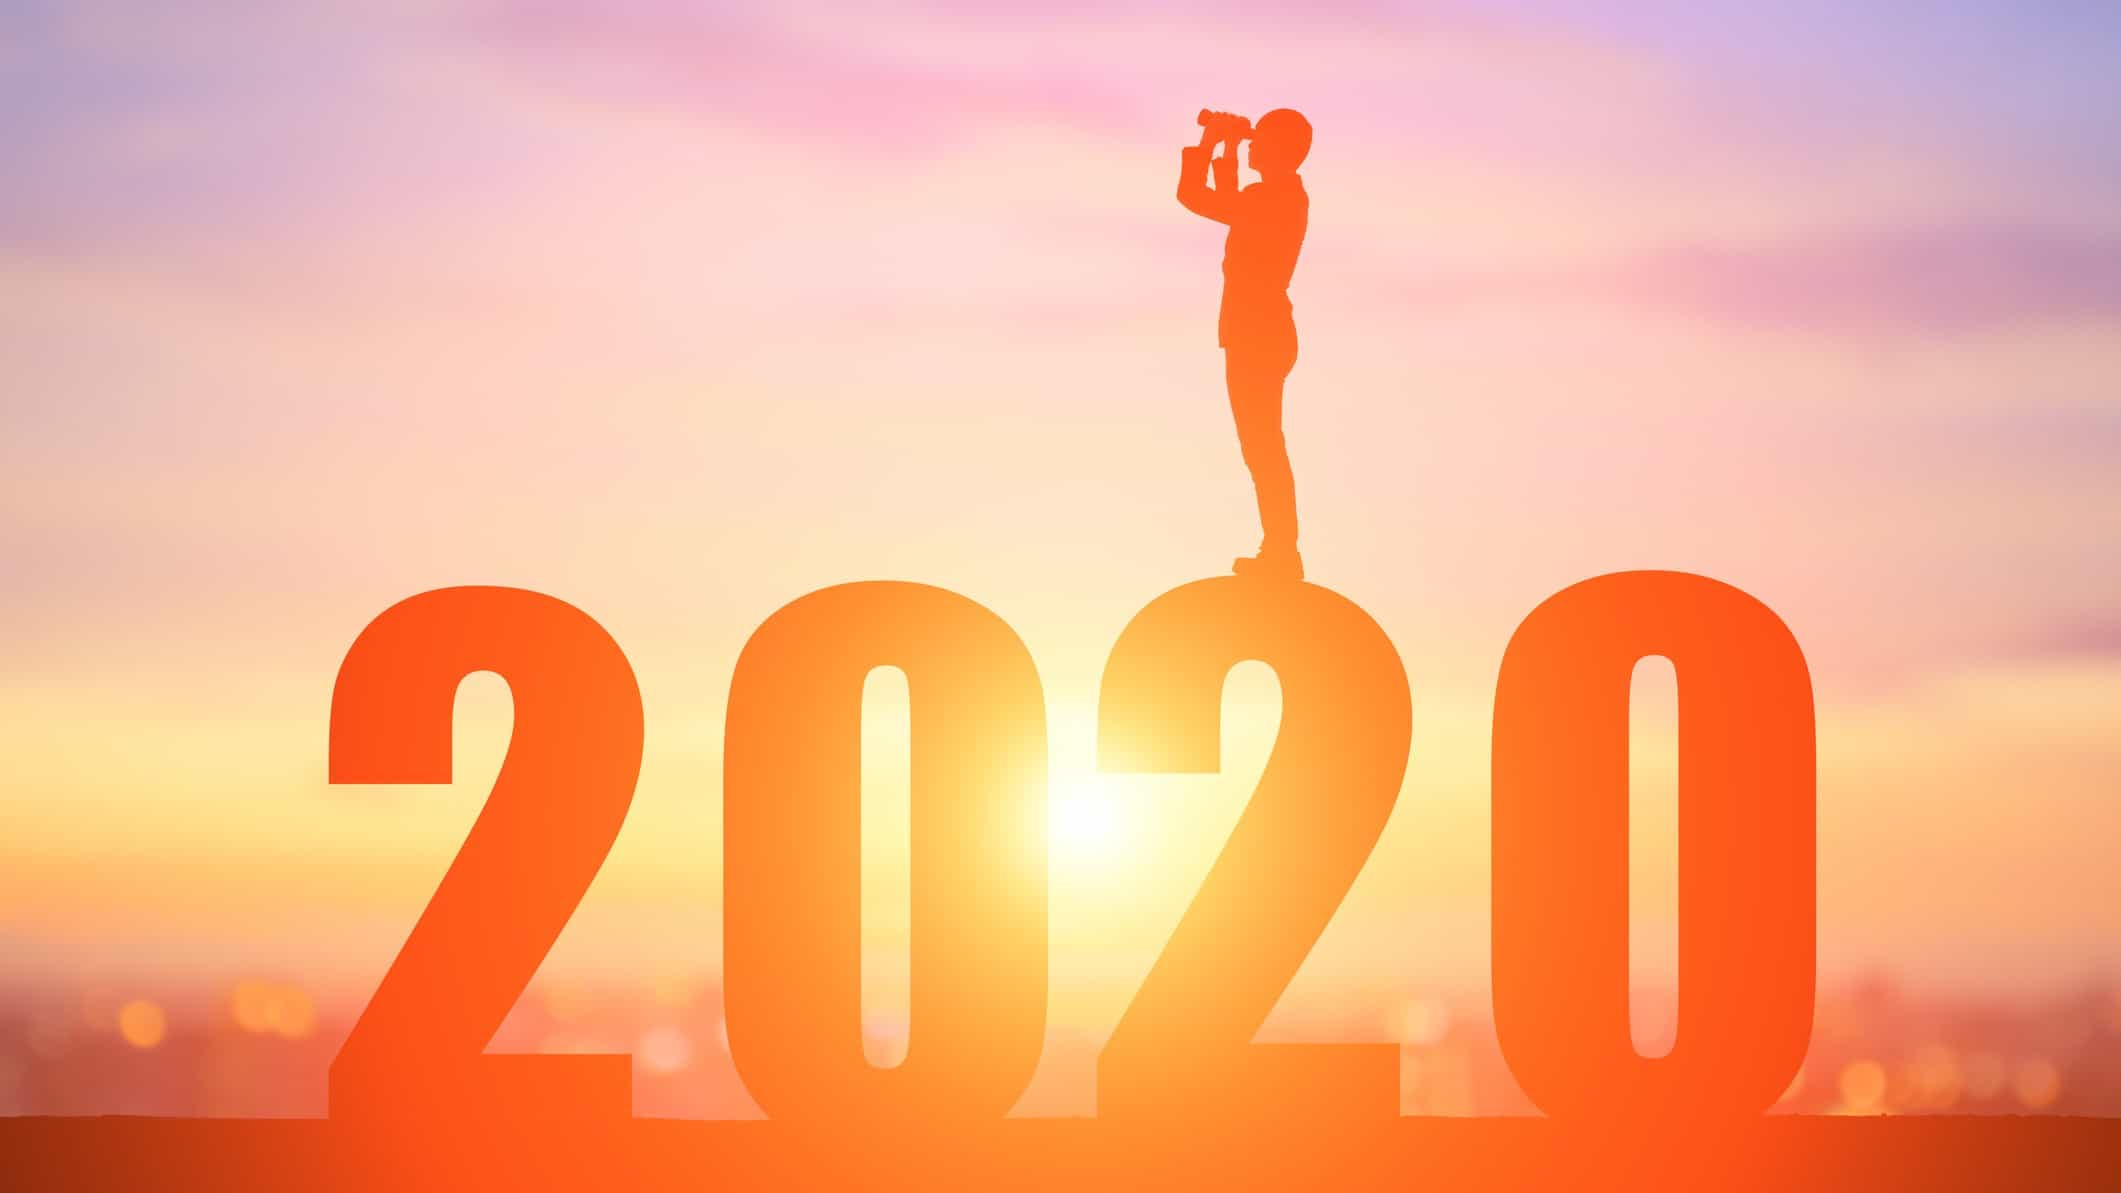 asx shares and REITs outlook represented by man standing on giant 2020 looking out with binoculars